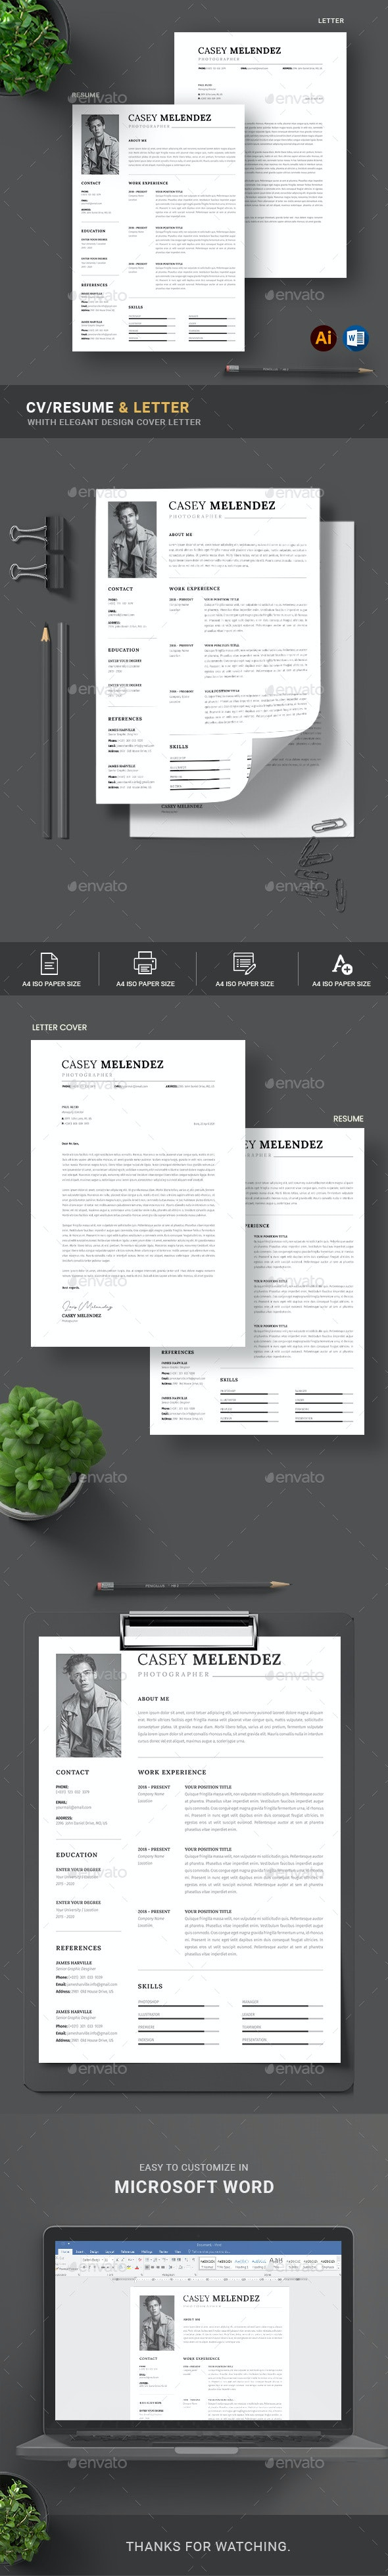 Clean CV Resume & Cover Letter - Resumes Stationery